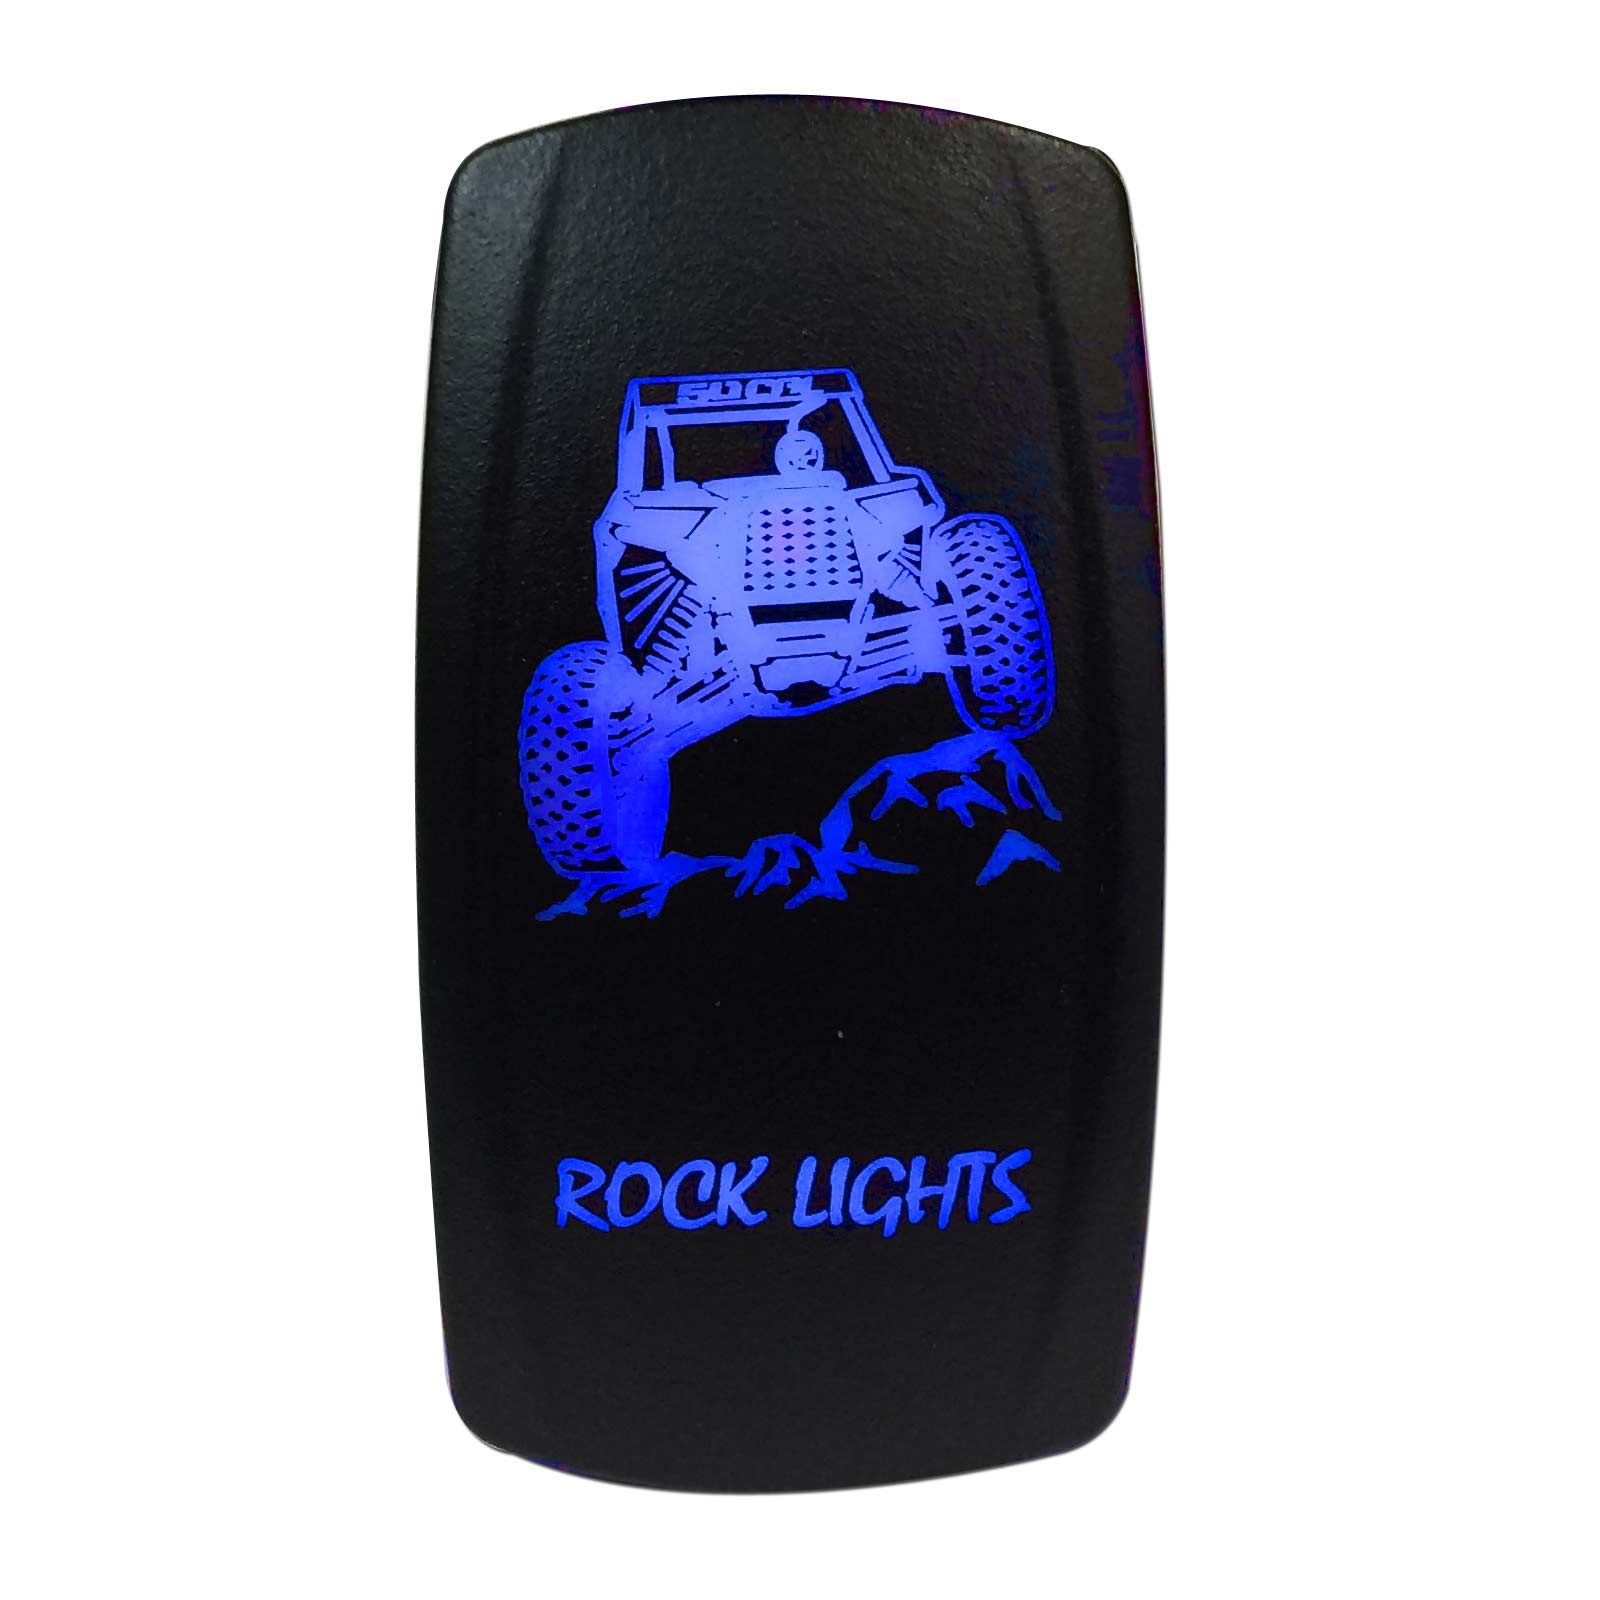 hight resolution of  illuminated 50 caliber racing on off rocker switch with laser etched design rock